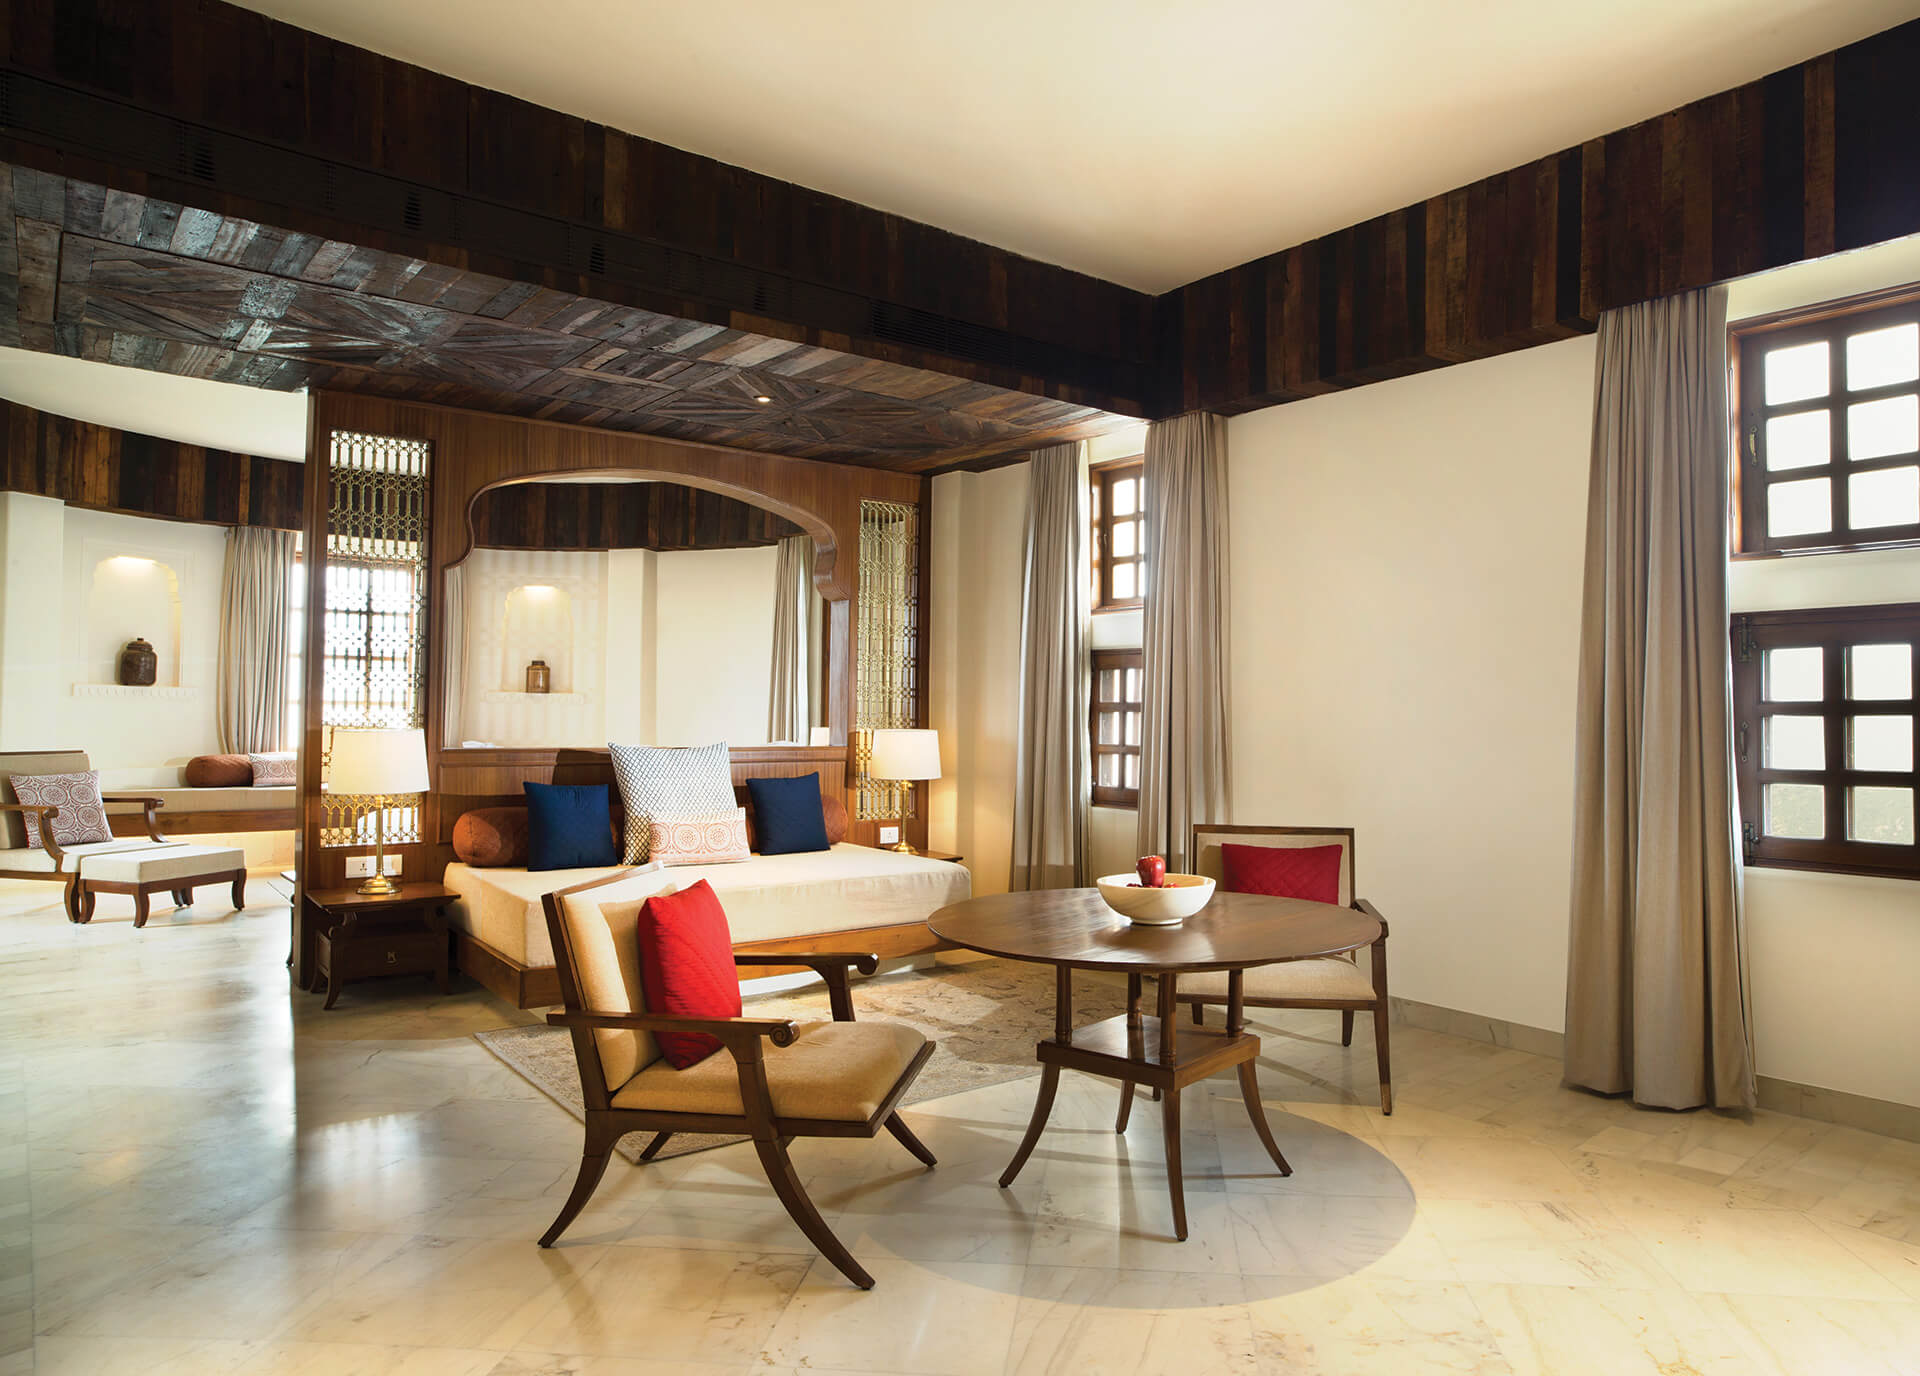 Accommodation - Grand Suite - Living Area & Bedroom| Alila Bishangarh Fort |Sthapatya Architects | STIRworld